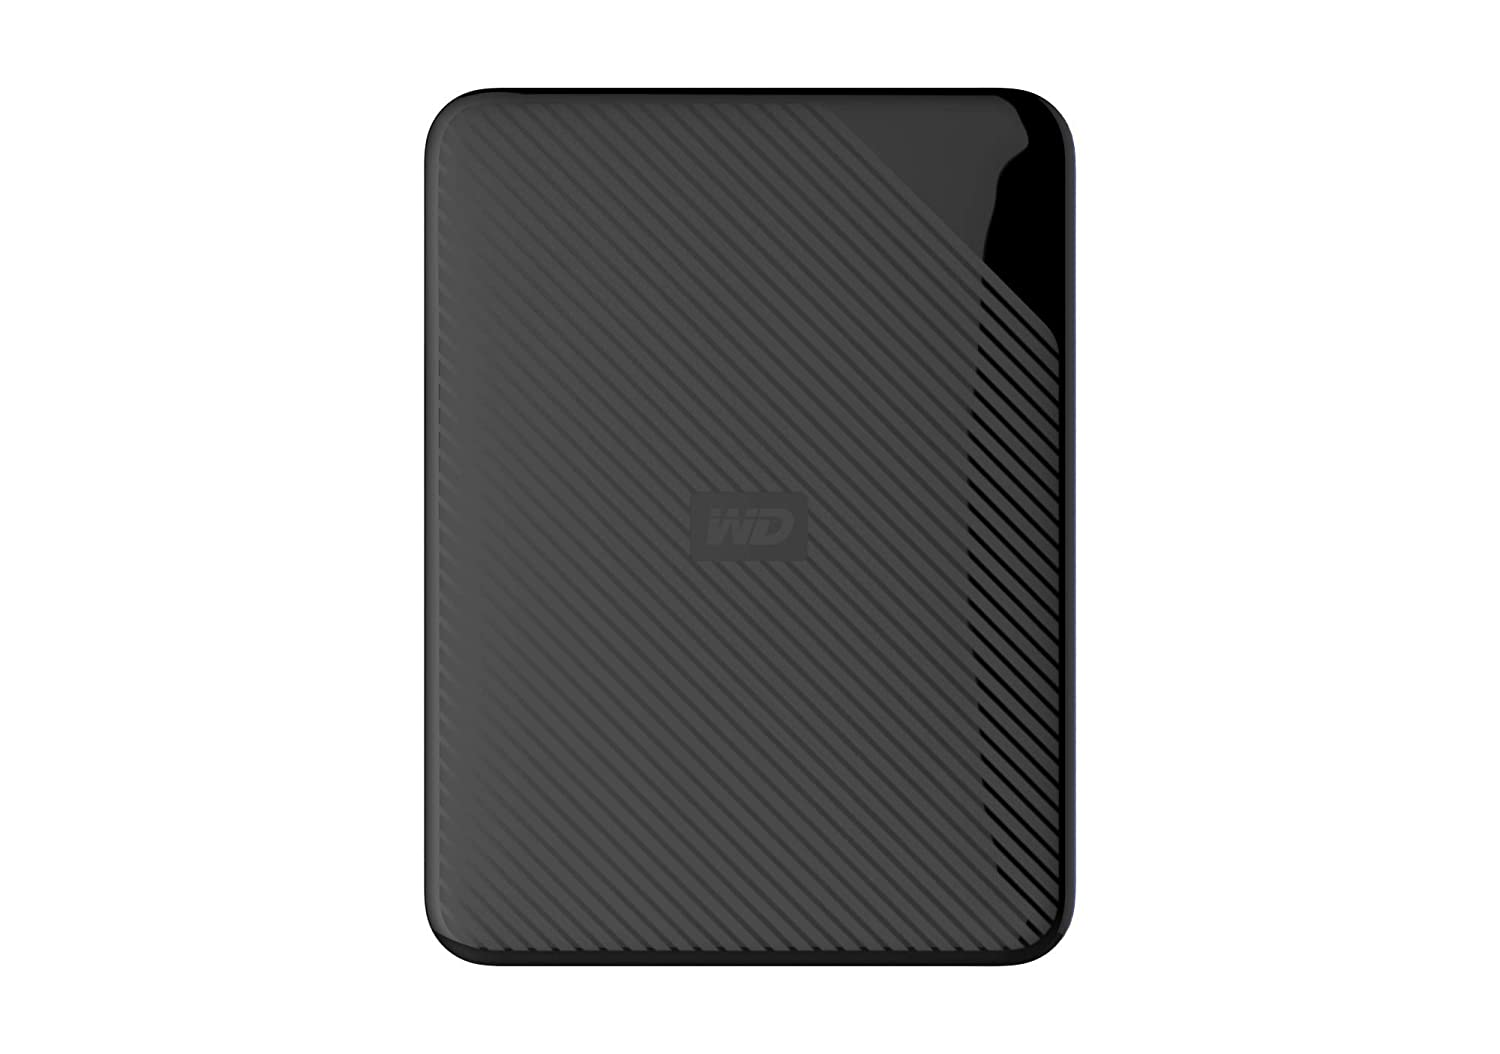 2f9772a5 Amazon.com: WD 2TB Gaming Drive Works with Playstation 4 Portable External  Hard Drive - WDBDFF0020BBK-WESN: Computers & Accessories